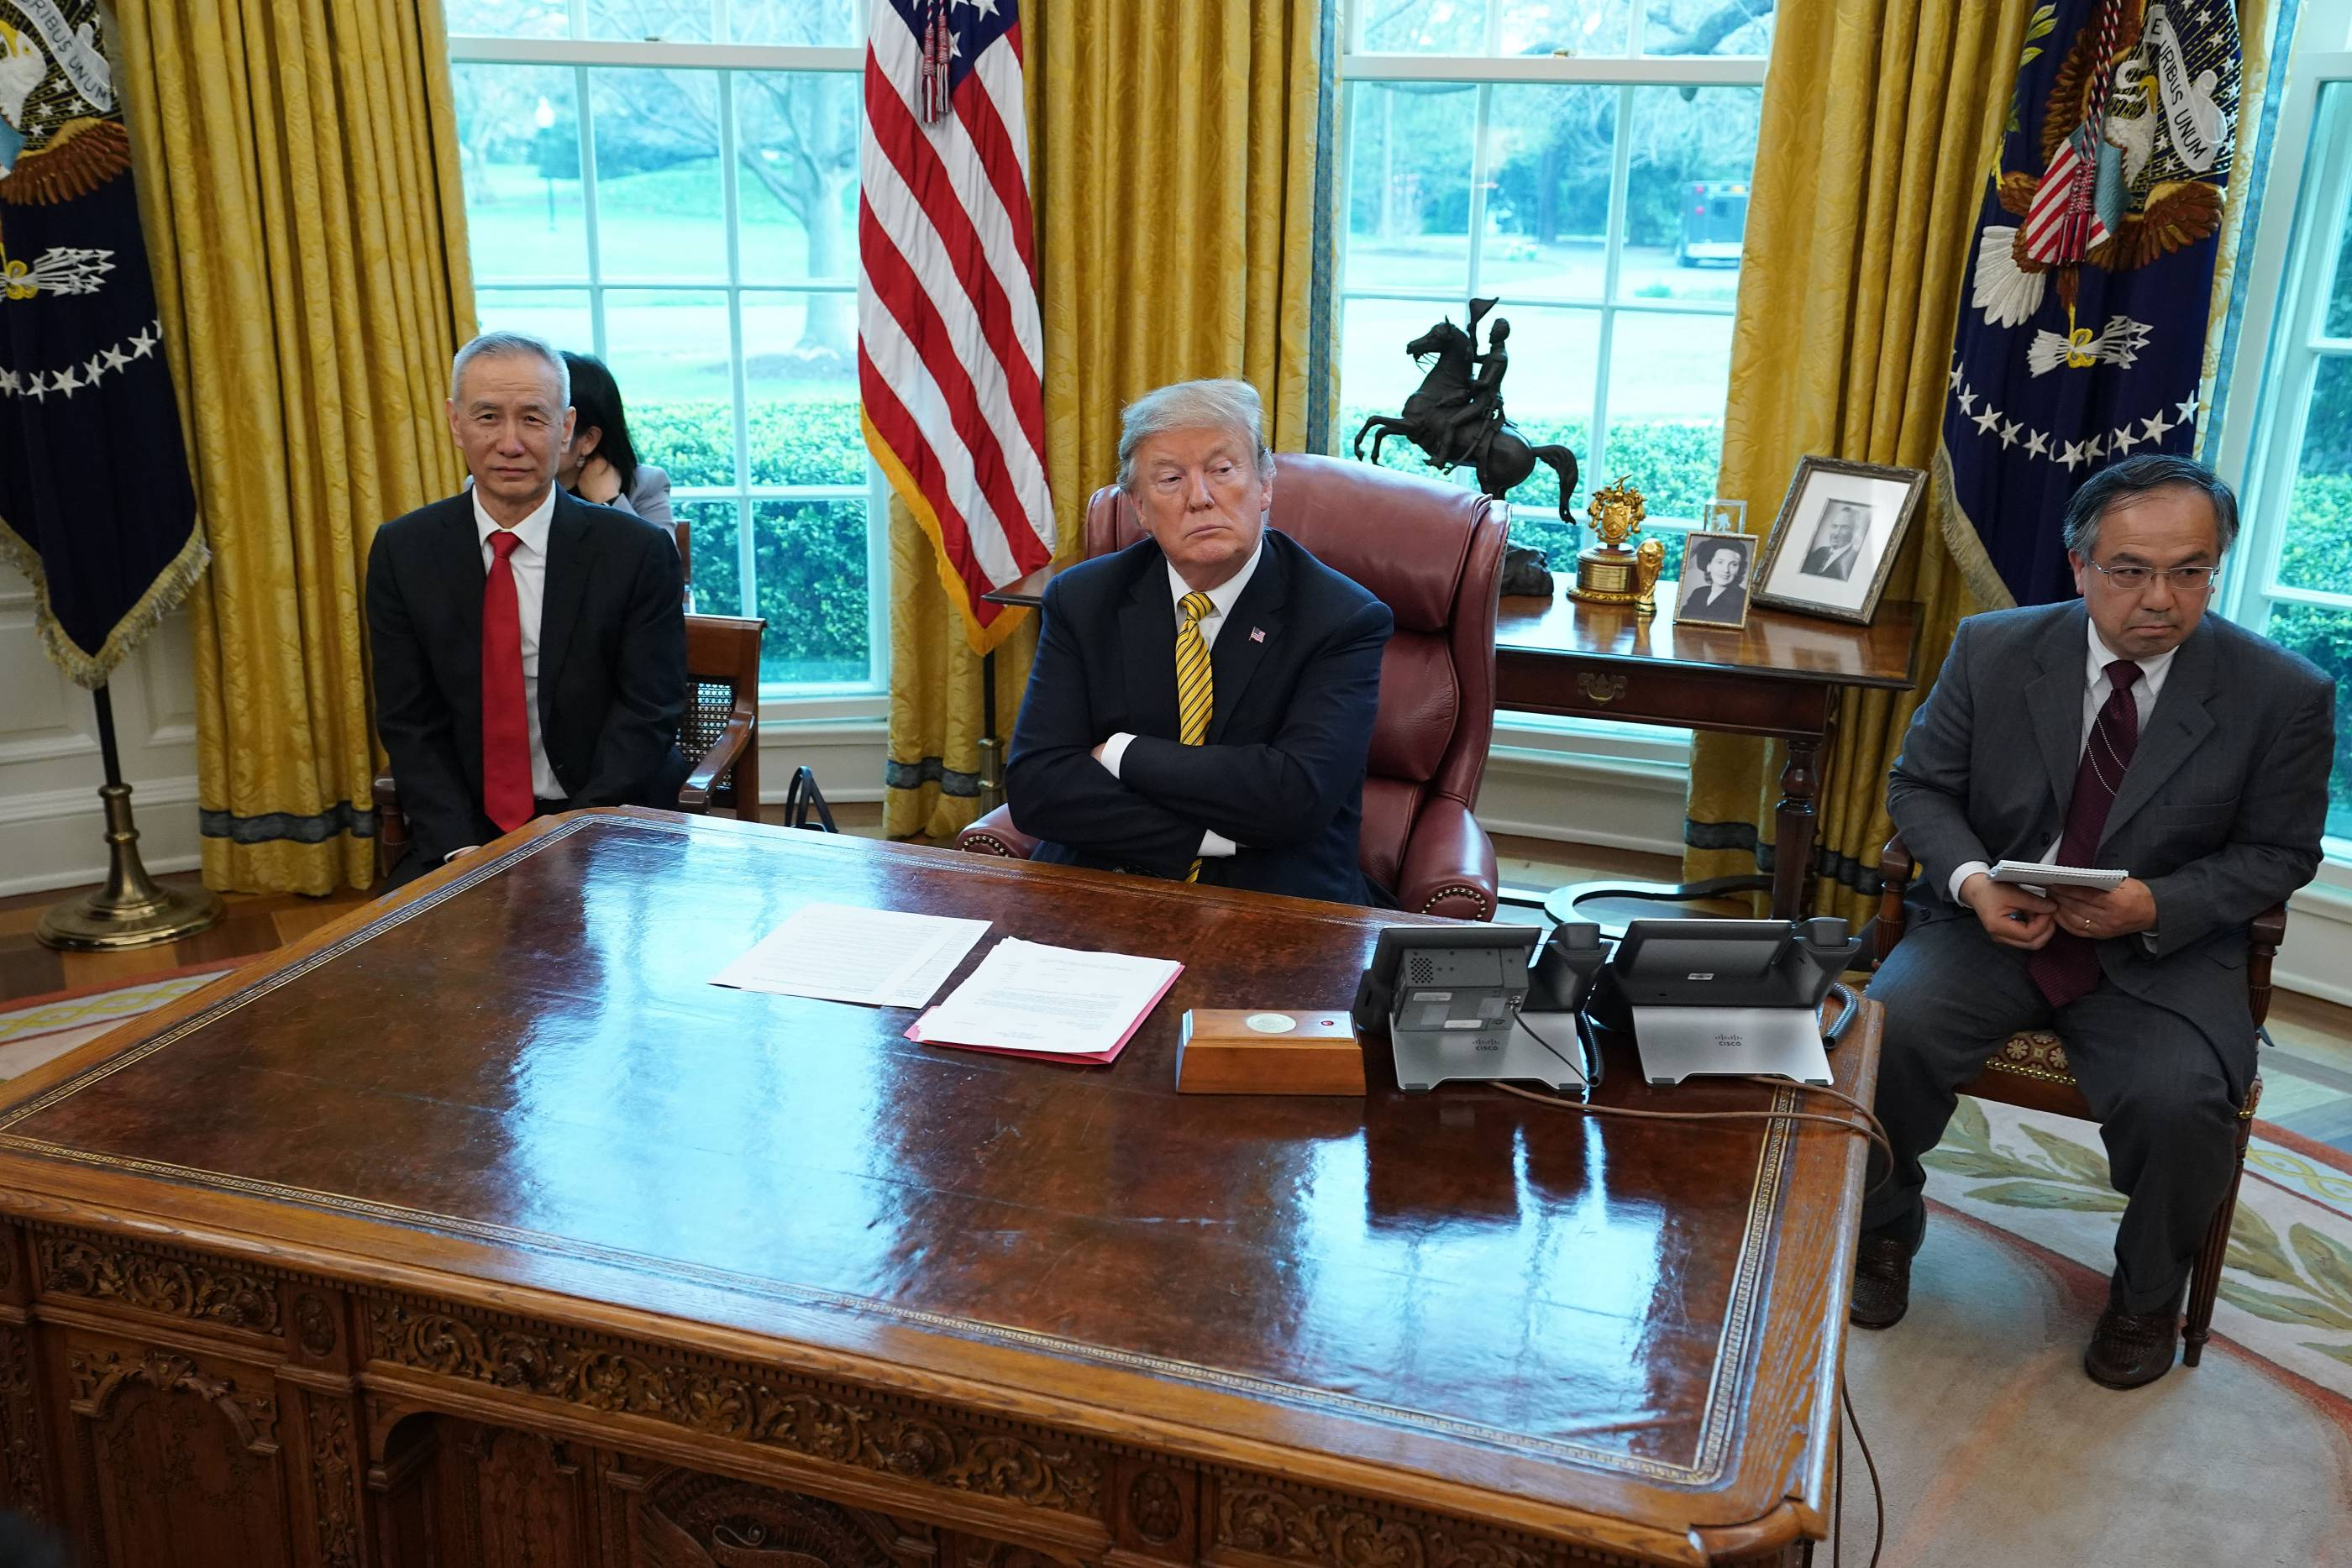 President Trump Meets With Vice Premier Of China At The White House